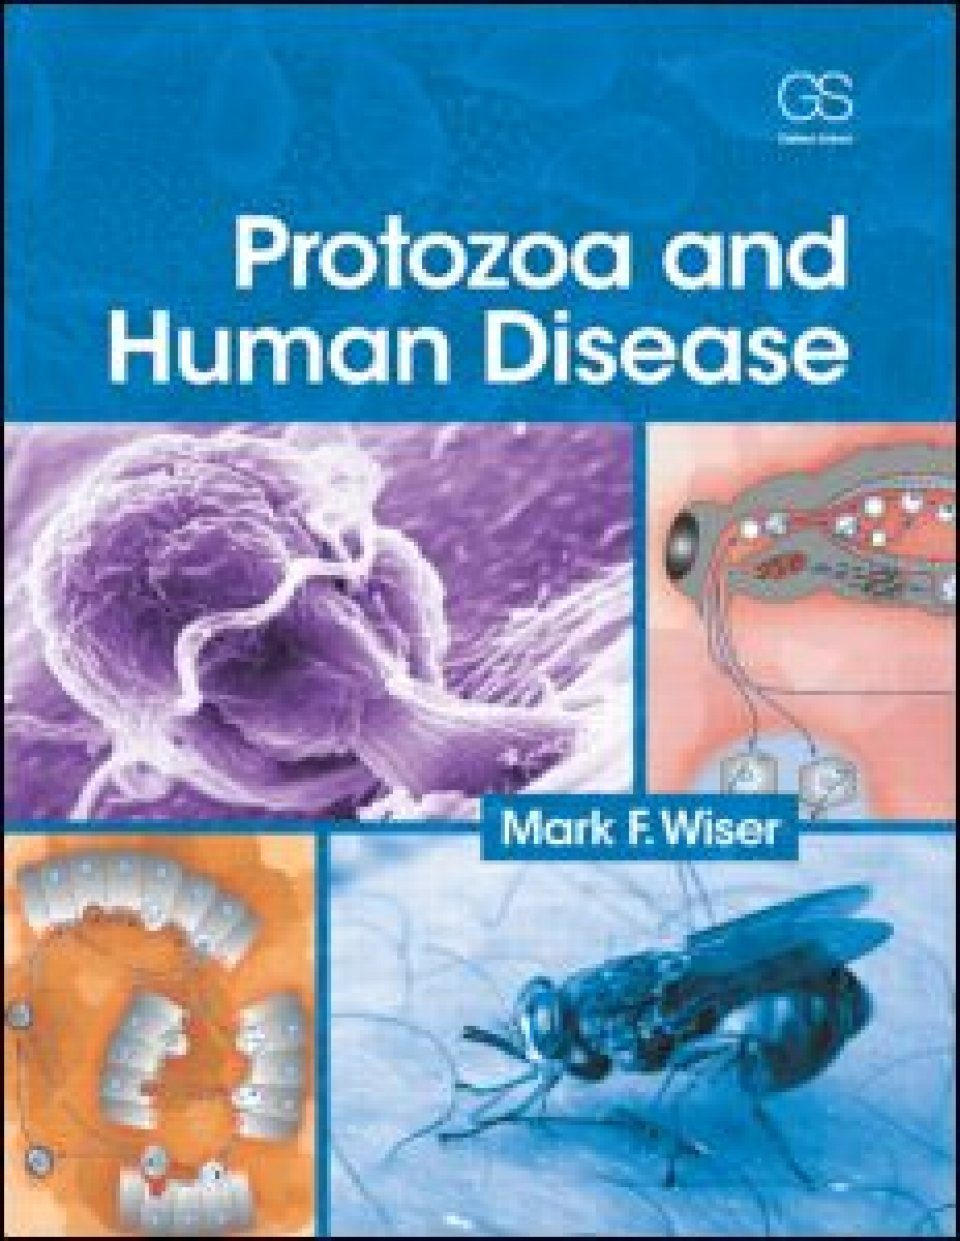 Protozoa and Human Disease